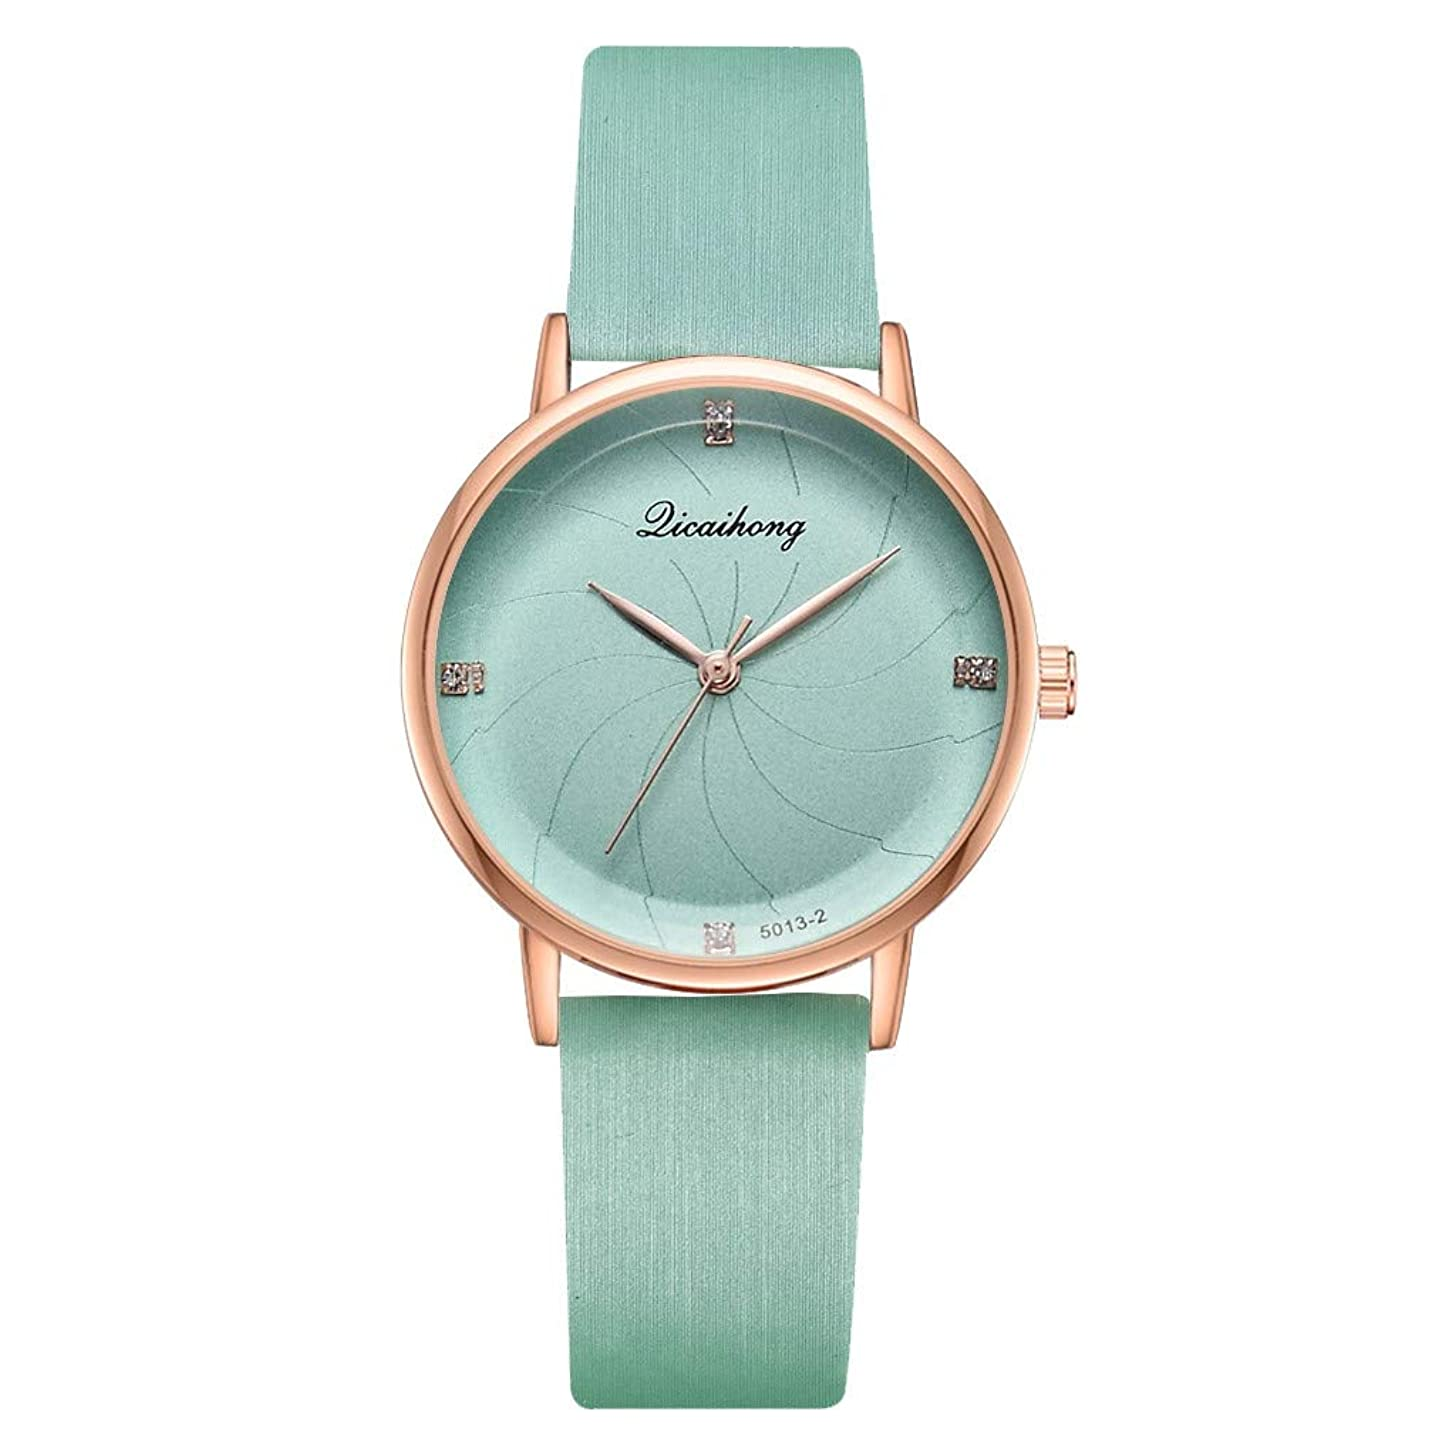 LUCAMORE Women Watches Leather Strap Round Dial Analog Fashion Ladies Watch on Sale Wrist Watch